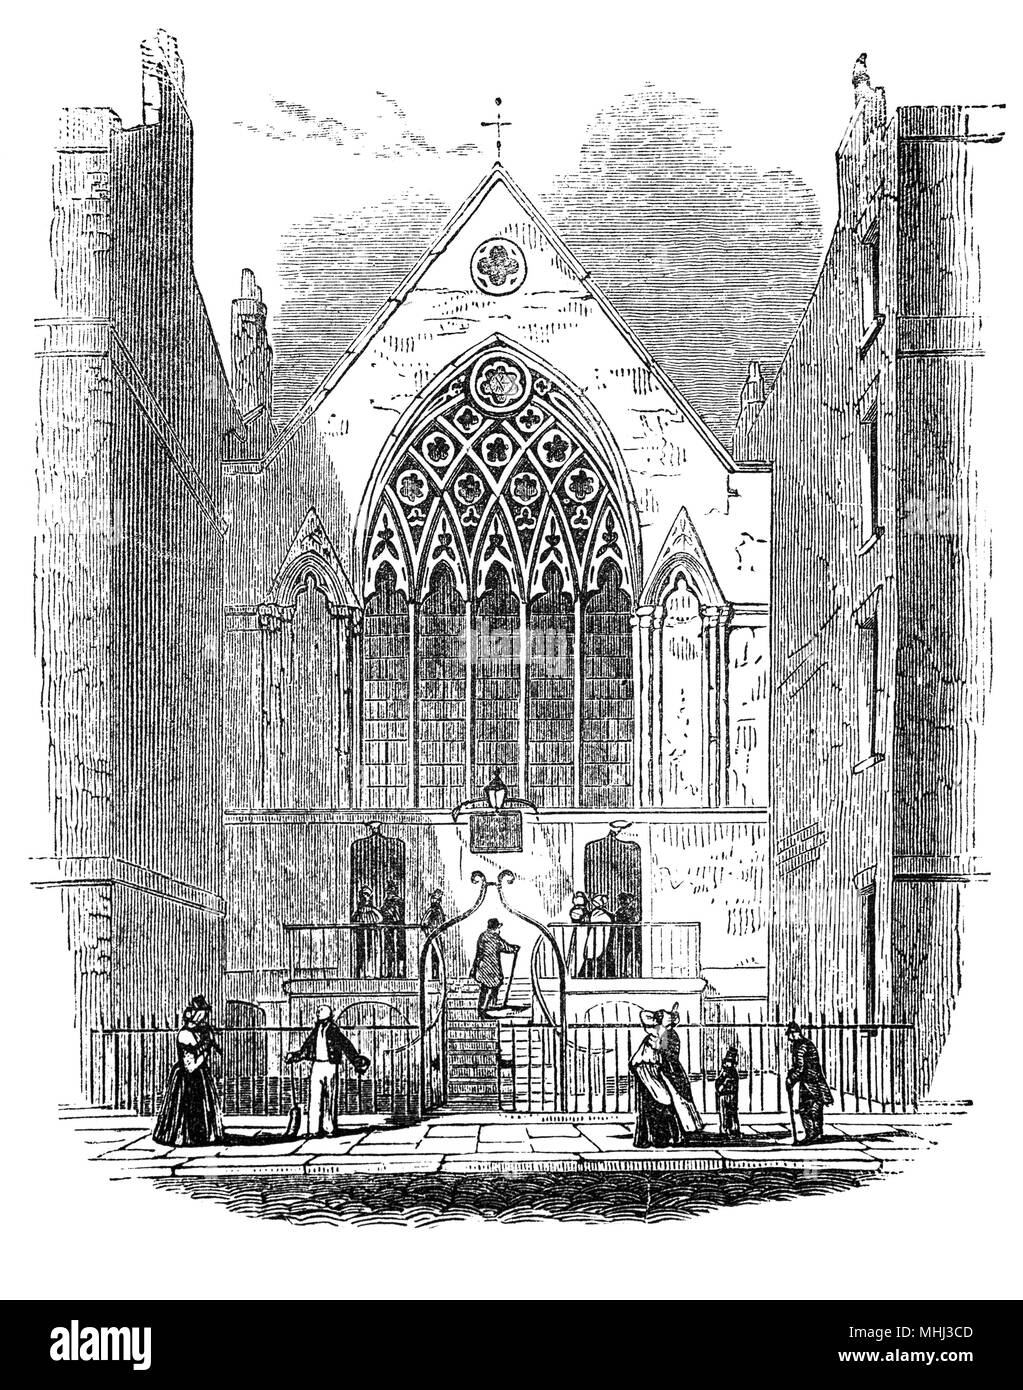 The Chapel of Ely Palace or Ely House, London townhouse of the Bishops of Ely from 1290 to 1772. On 17 October 1546, James Butler, 9th Earl of Ormond, a powerful Munster landowner who had served in the household of Cardinal Wolsey in his youth, crossed the quarrelsome Lord Deputy of Ireland, Sir Anthony St Leger, who was visiting London with his household. They were invited to dine at Ely Palace, where Ormond was poisoned along with his steward and 16 of his household, it was widely assumed, at the instructions of St Leger. - Stock Image